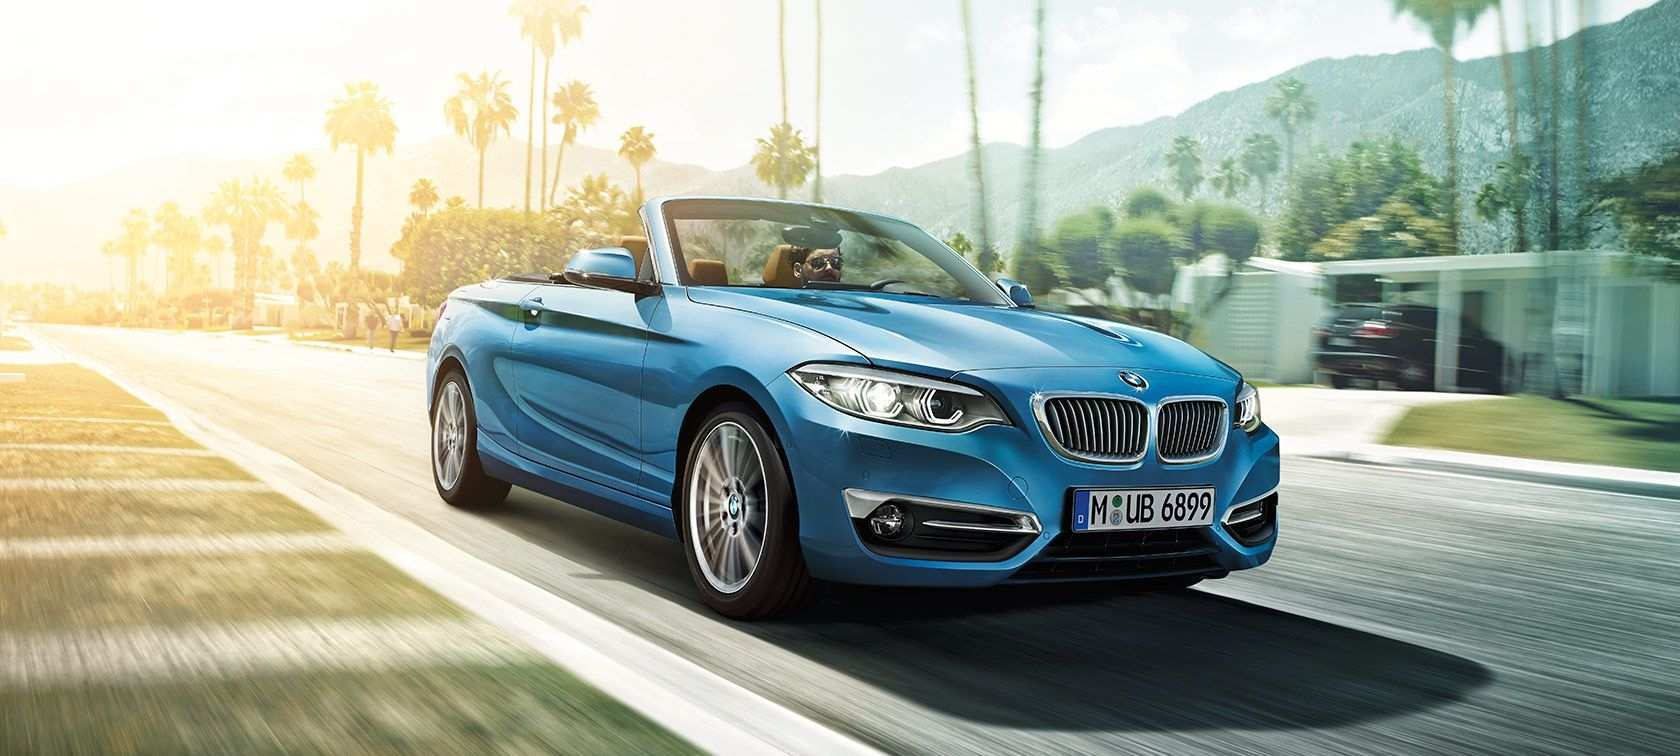 73 New Bmw Ts Safari 2019 Review Style with Bmw Ts Safari 2019 Review